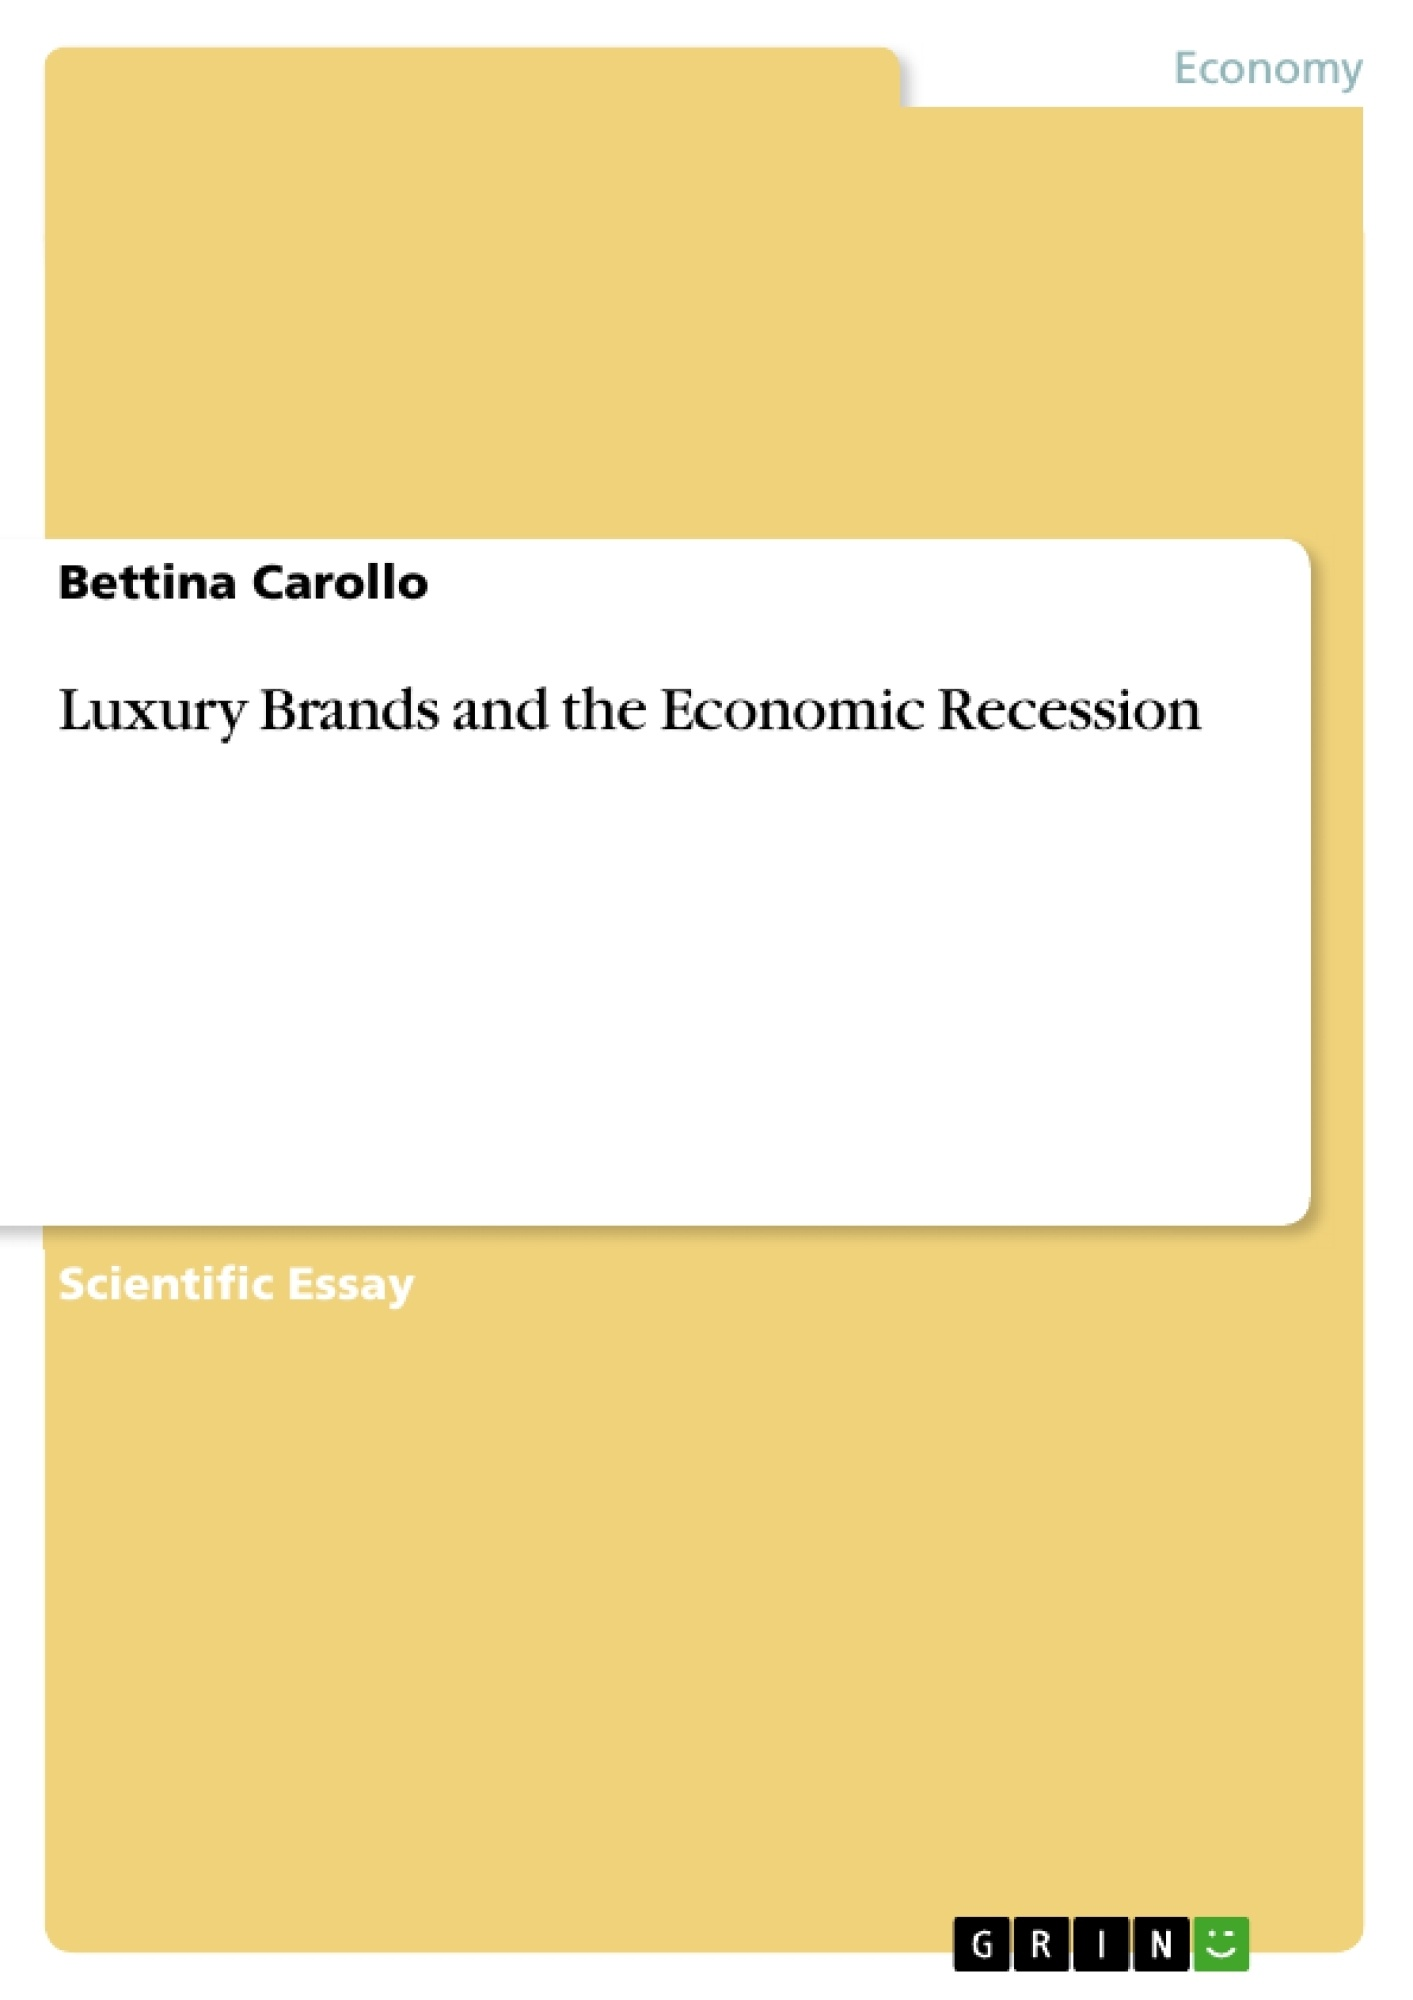 Title: Luxury Brands and the Economic Recession